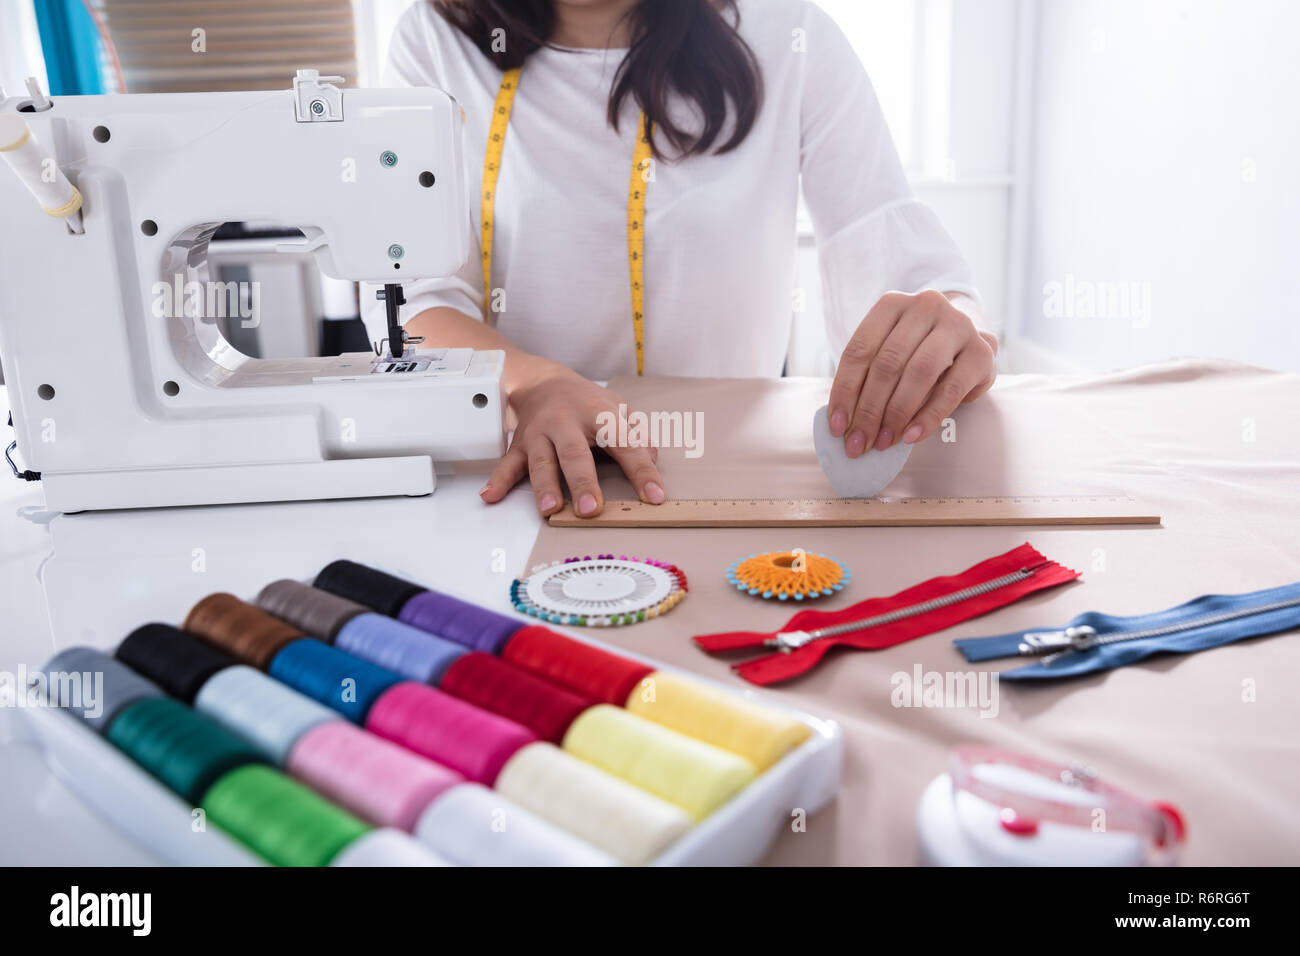 Fashion Designer Measuring Fabric With Ruler - Stock Image